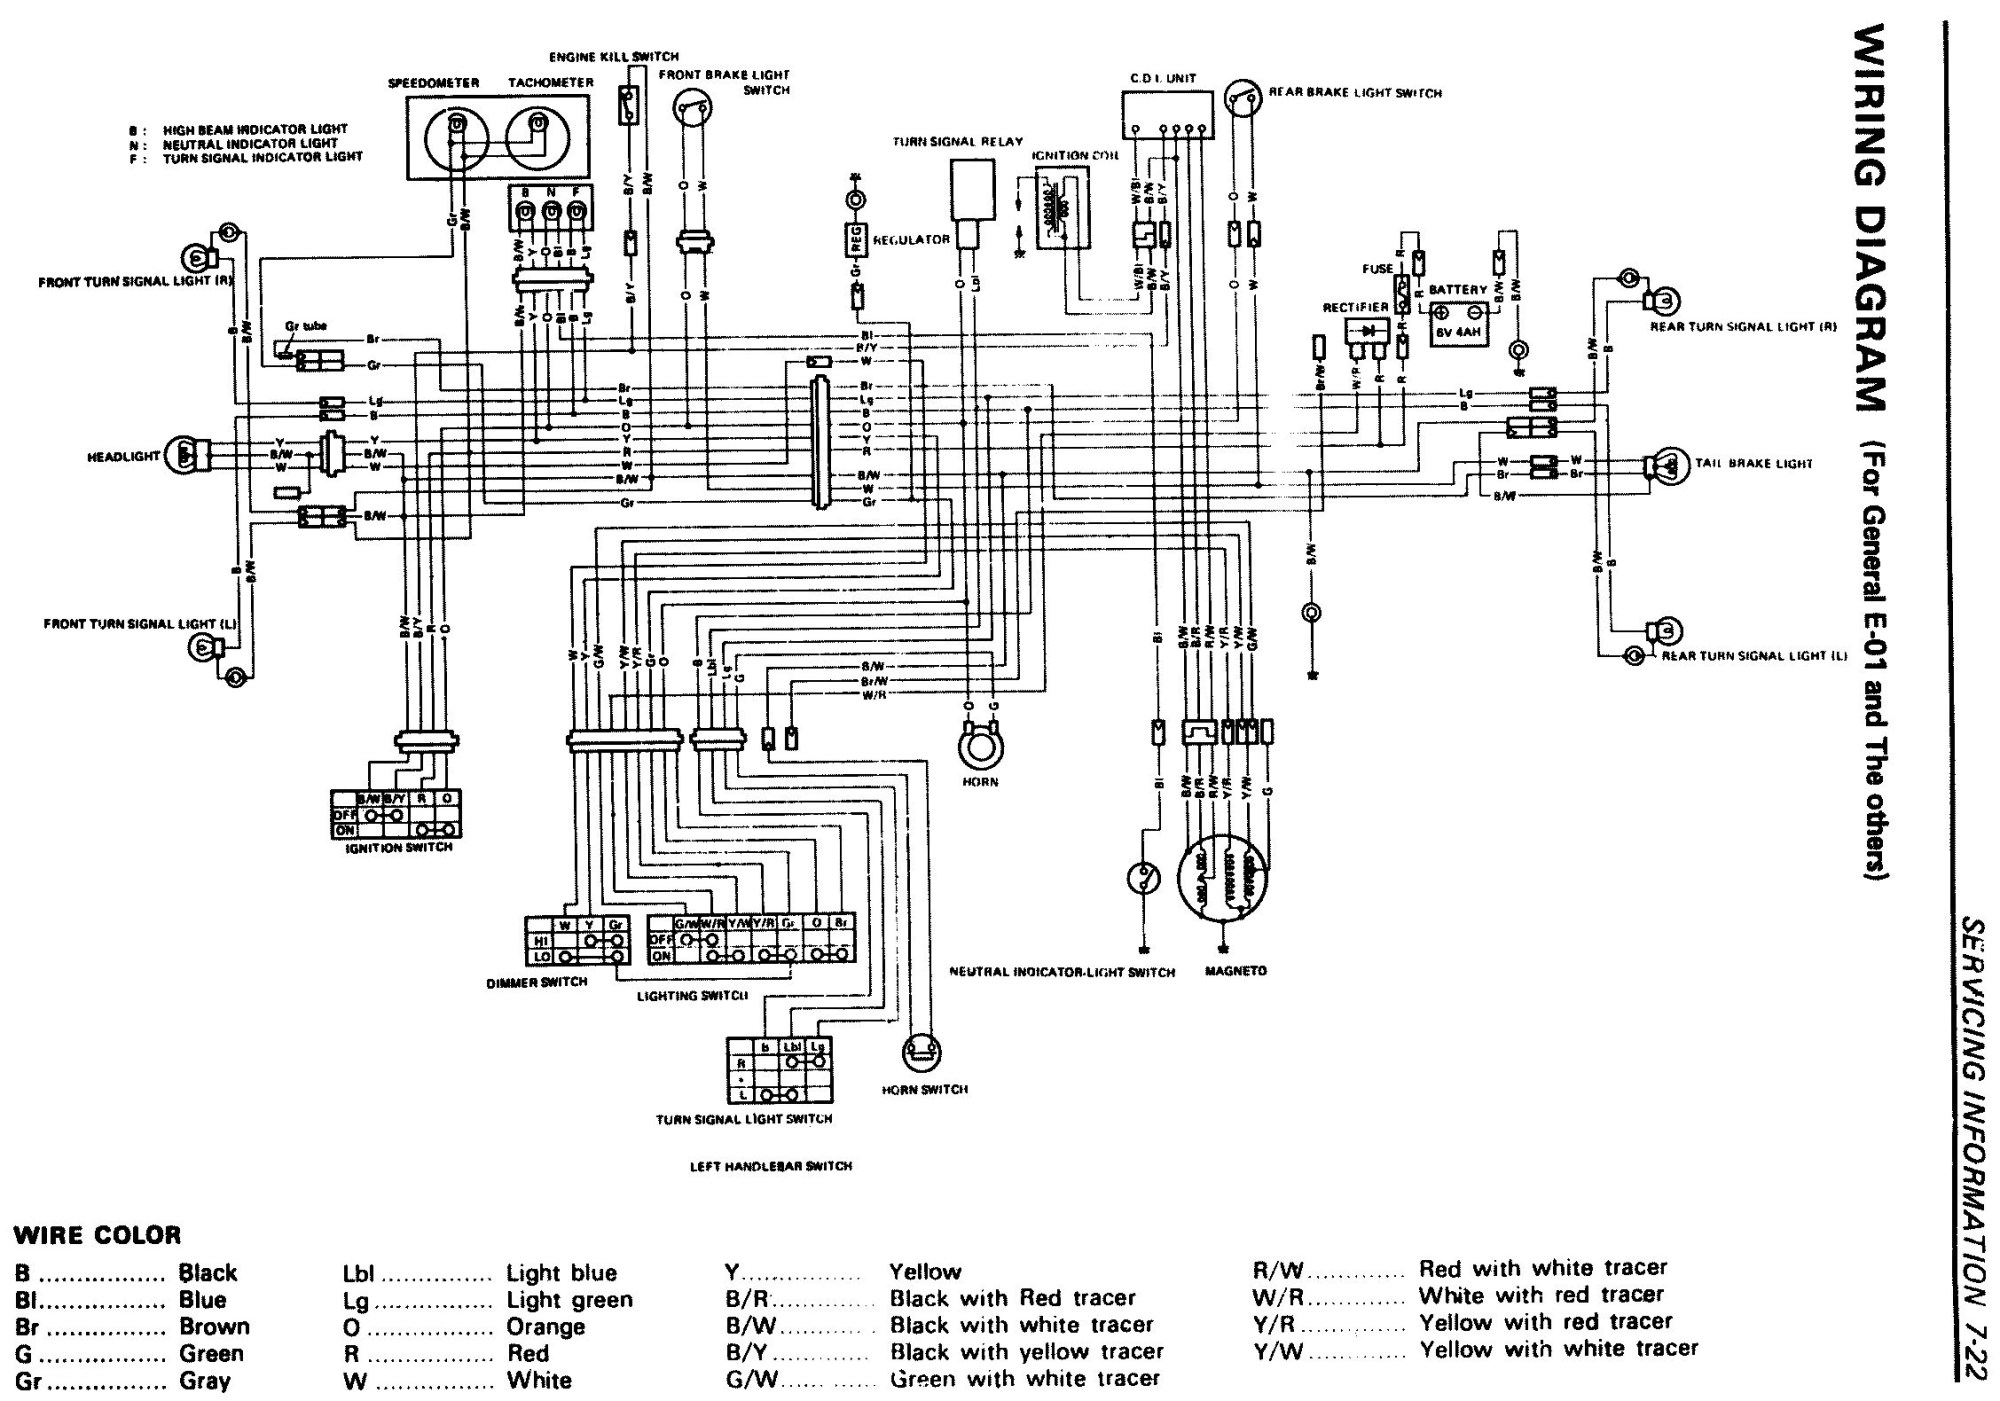 hight resolution of suzuki ts 250 wiring diagram free wiring diagram for you u2022 sub panel to main panel wiring diagram suzuki ts 250 1981 wiring diagram